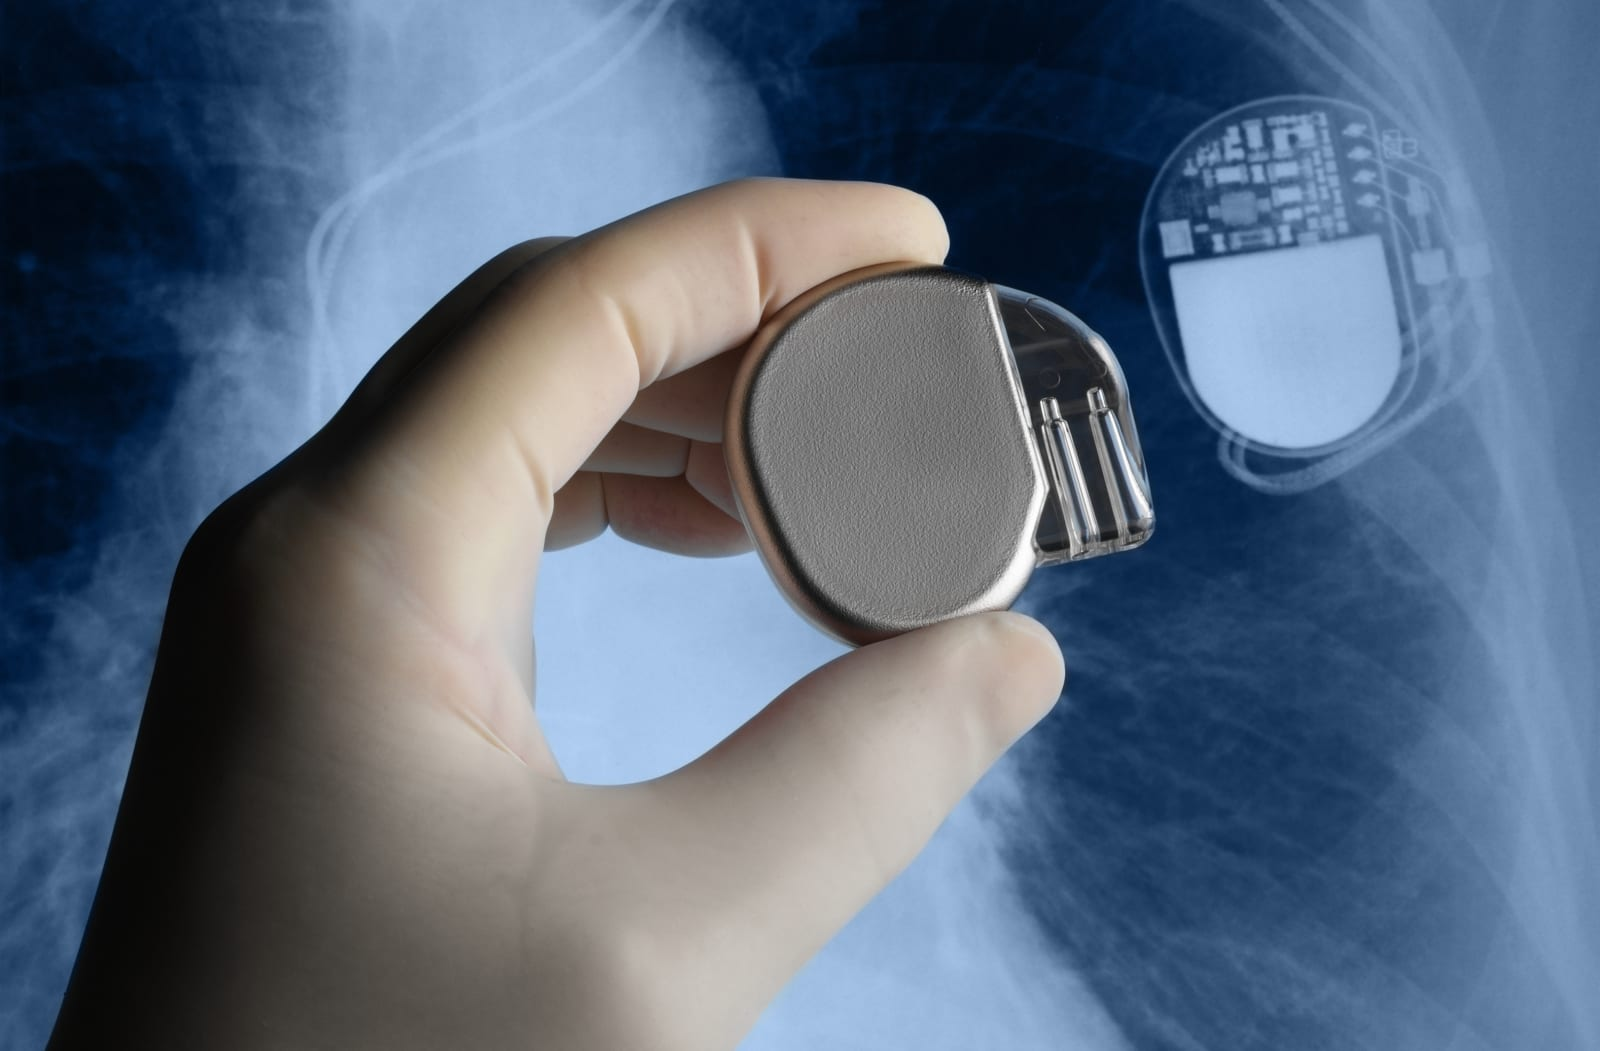 Pacemakers are far more vulnerable to hacking than we thought